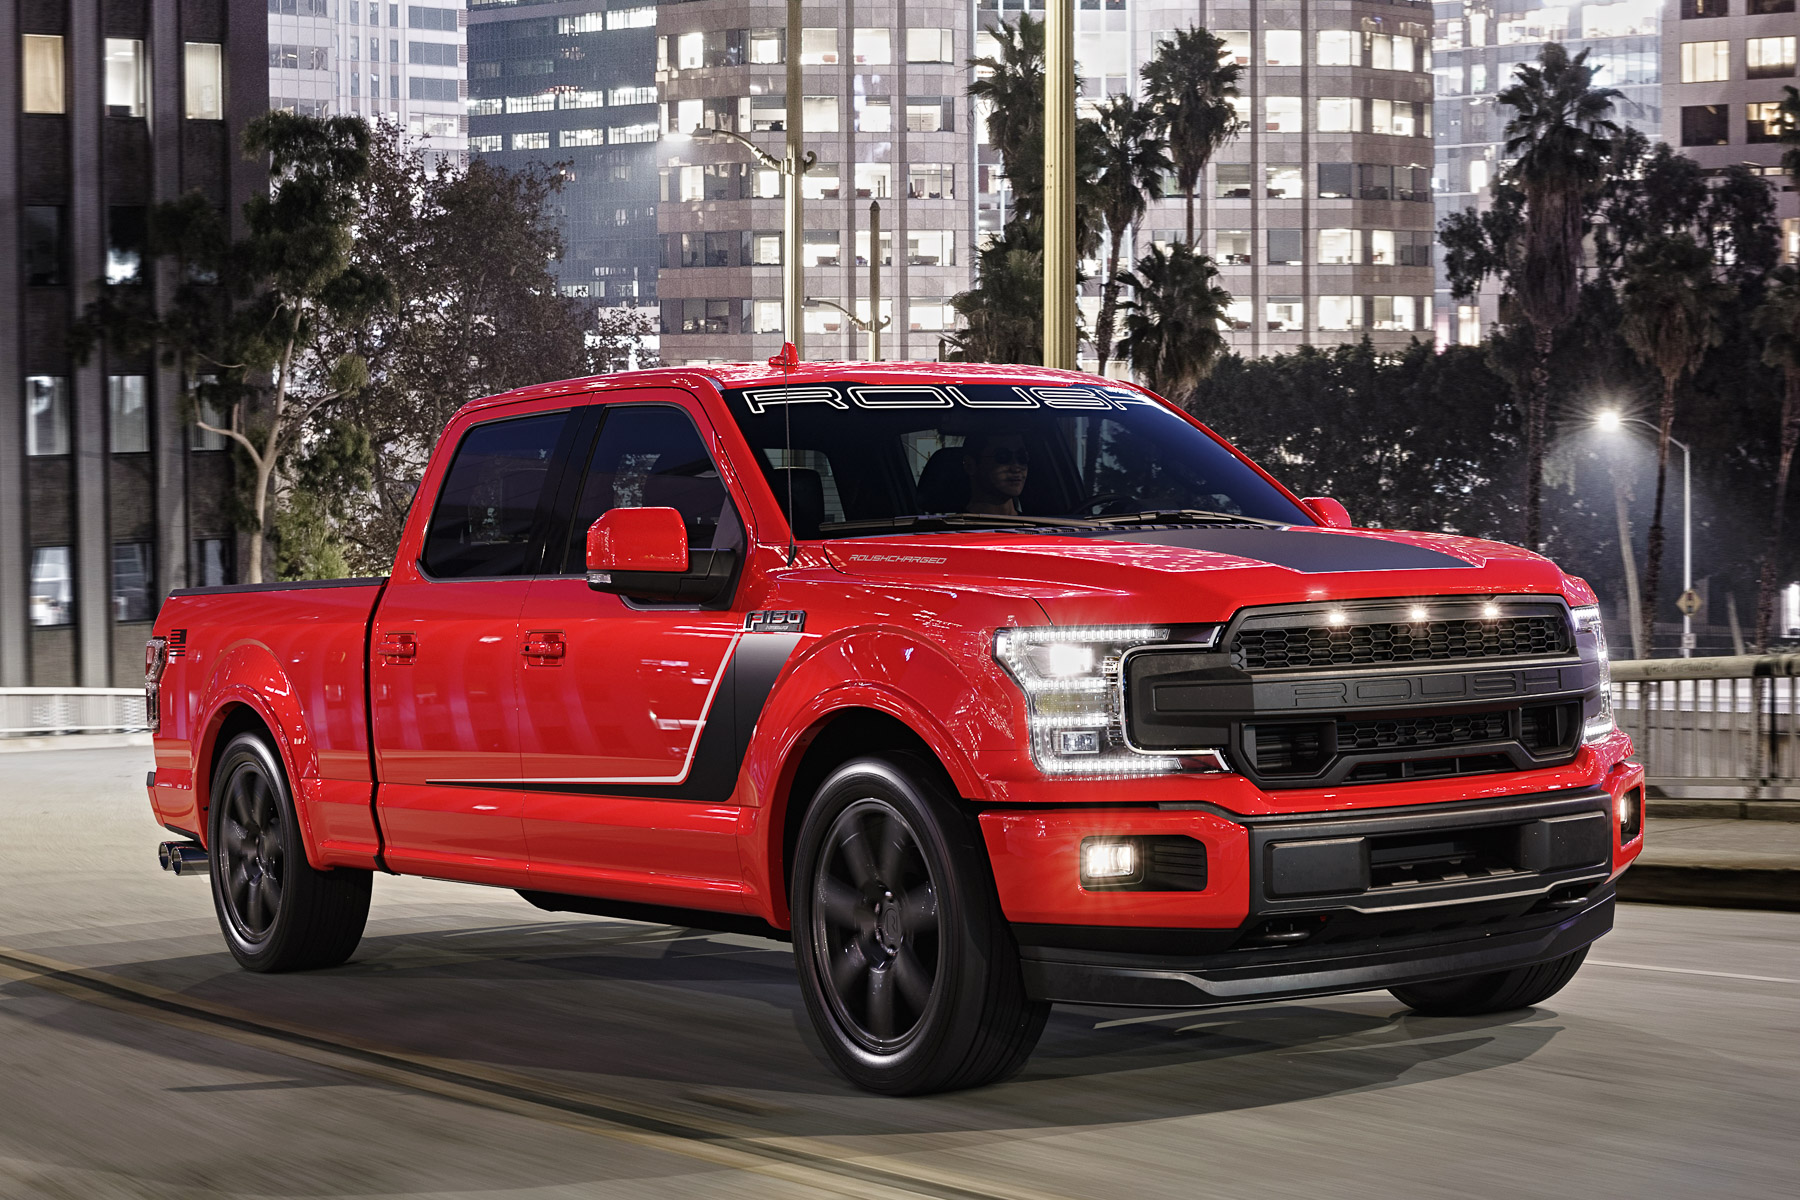 ROUSH F-150 Nitemare supercharged V8 truck